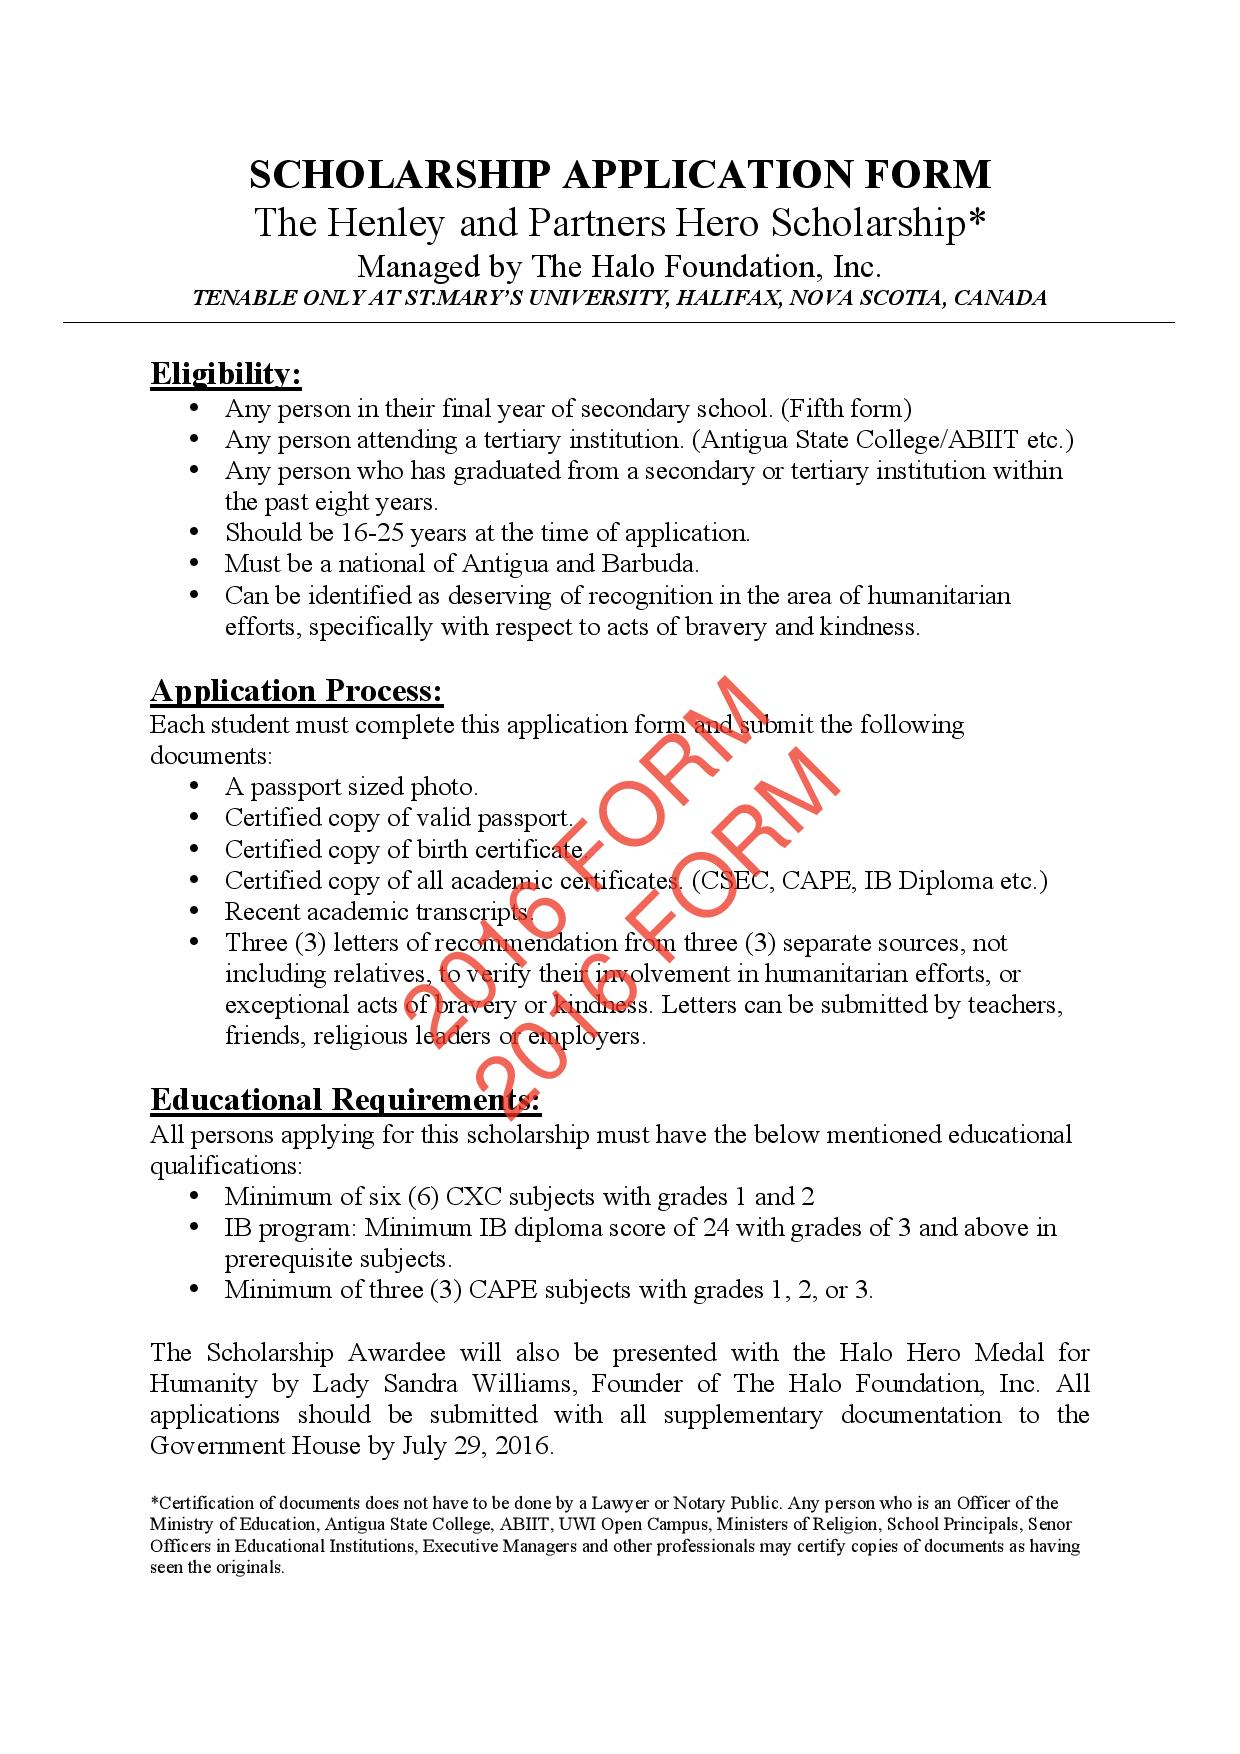 Ib diploma certificate sample images certificate design and template blog caribbean students to atlantic canada scholarship documents yadclub images xflitez Gallery